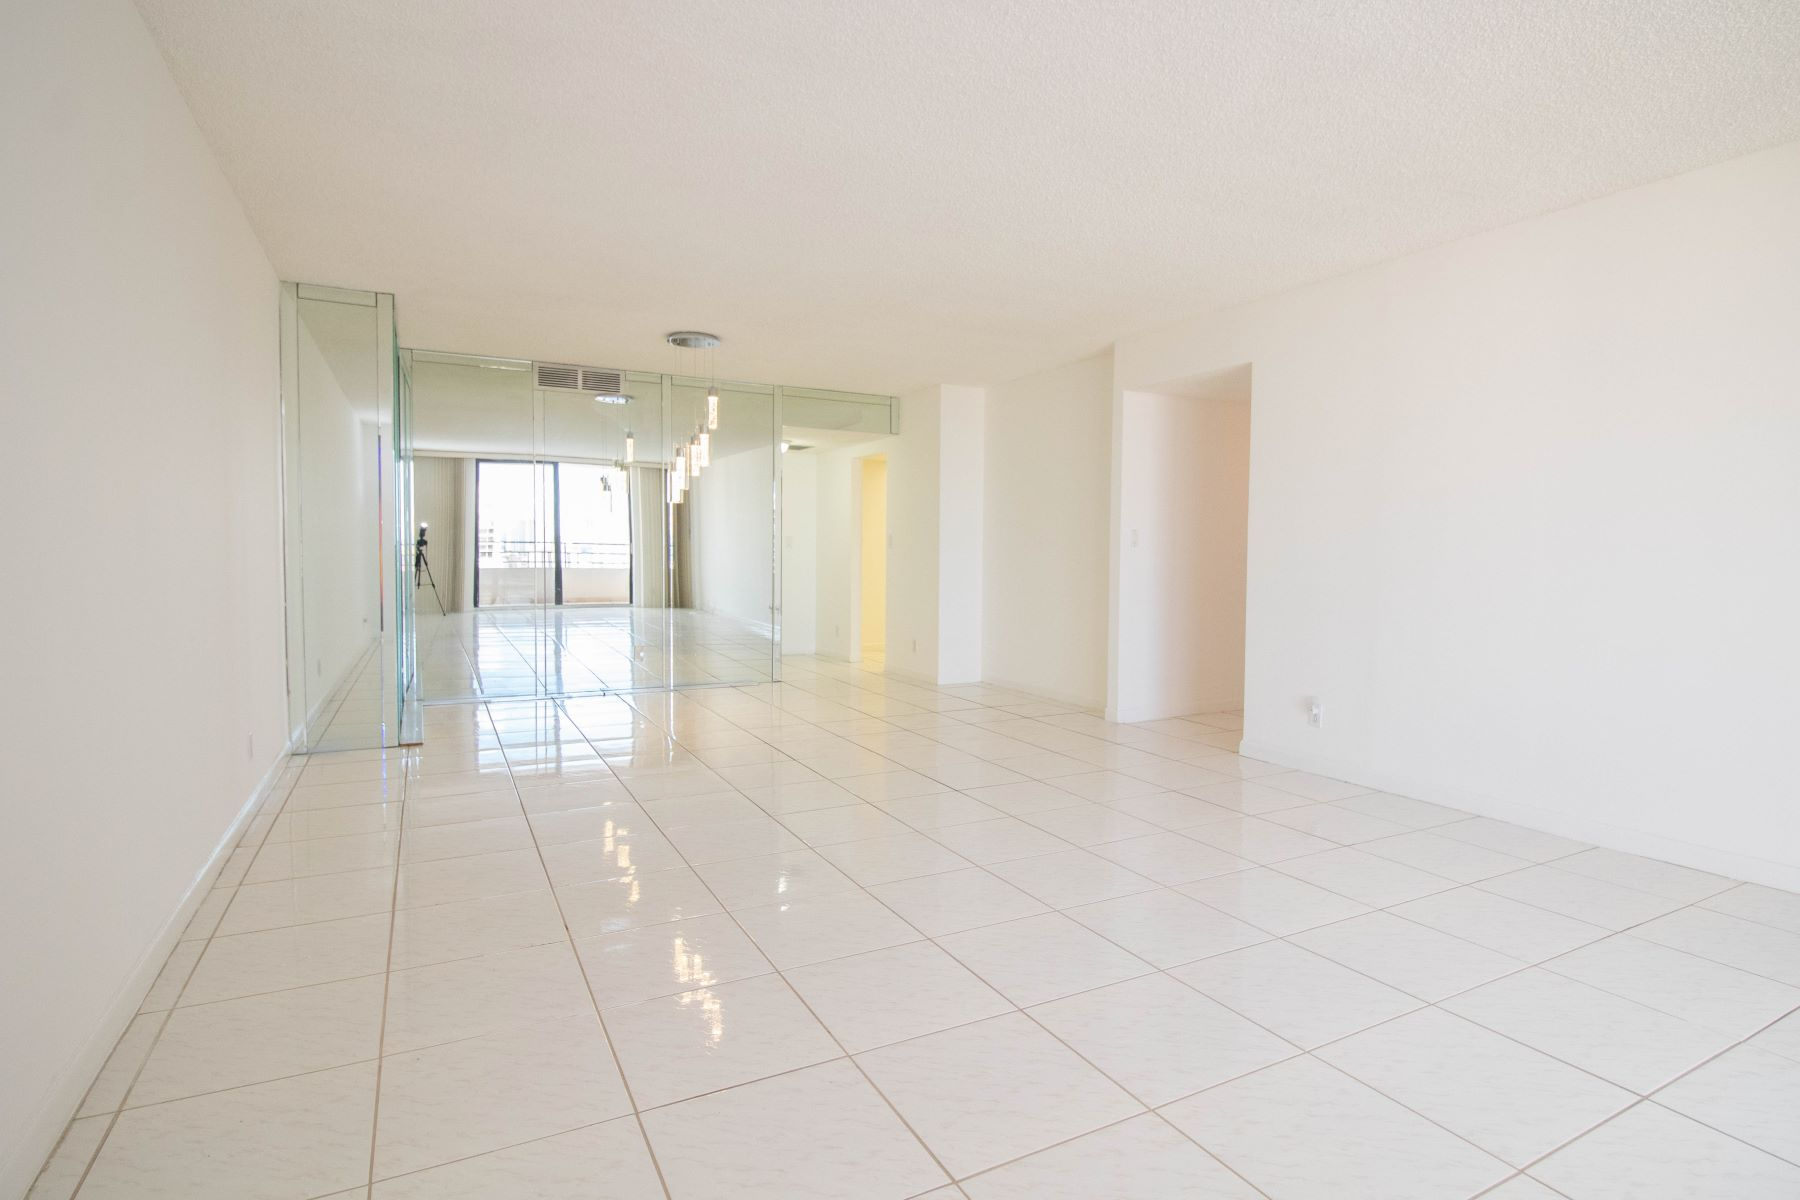 Condominiums for Sale at 2500 Parkview Dr 1816, Hallandale, Florida 33009 United States